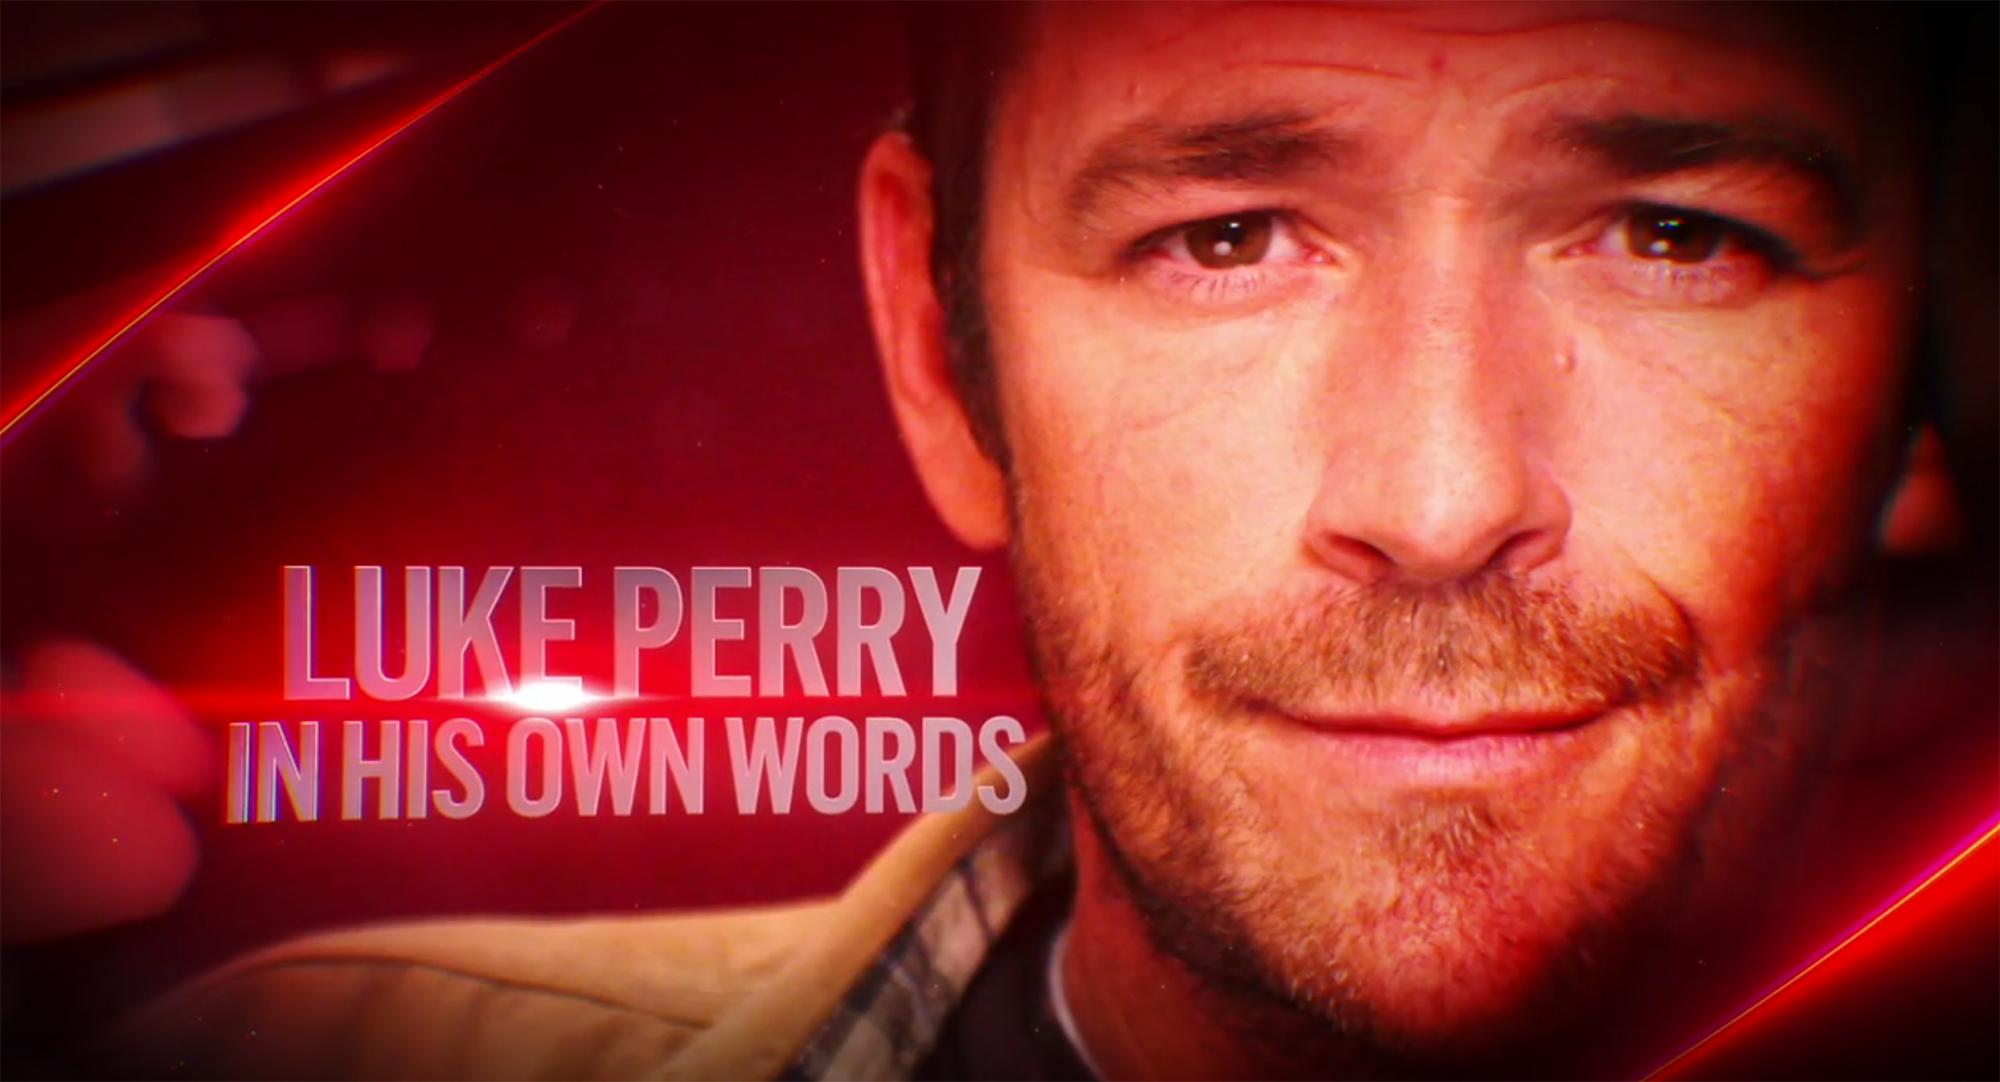 Luke Perry: In His Own Words' Looks Back at His Life, Career